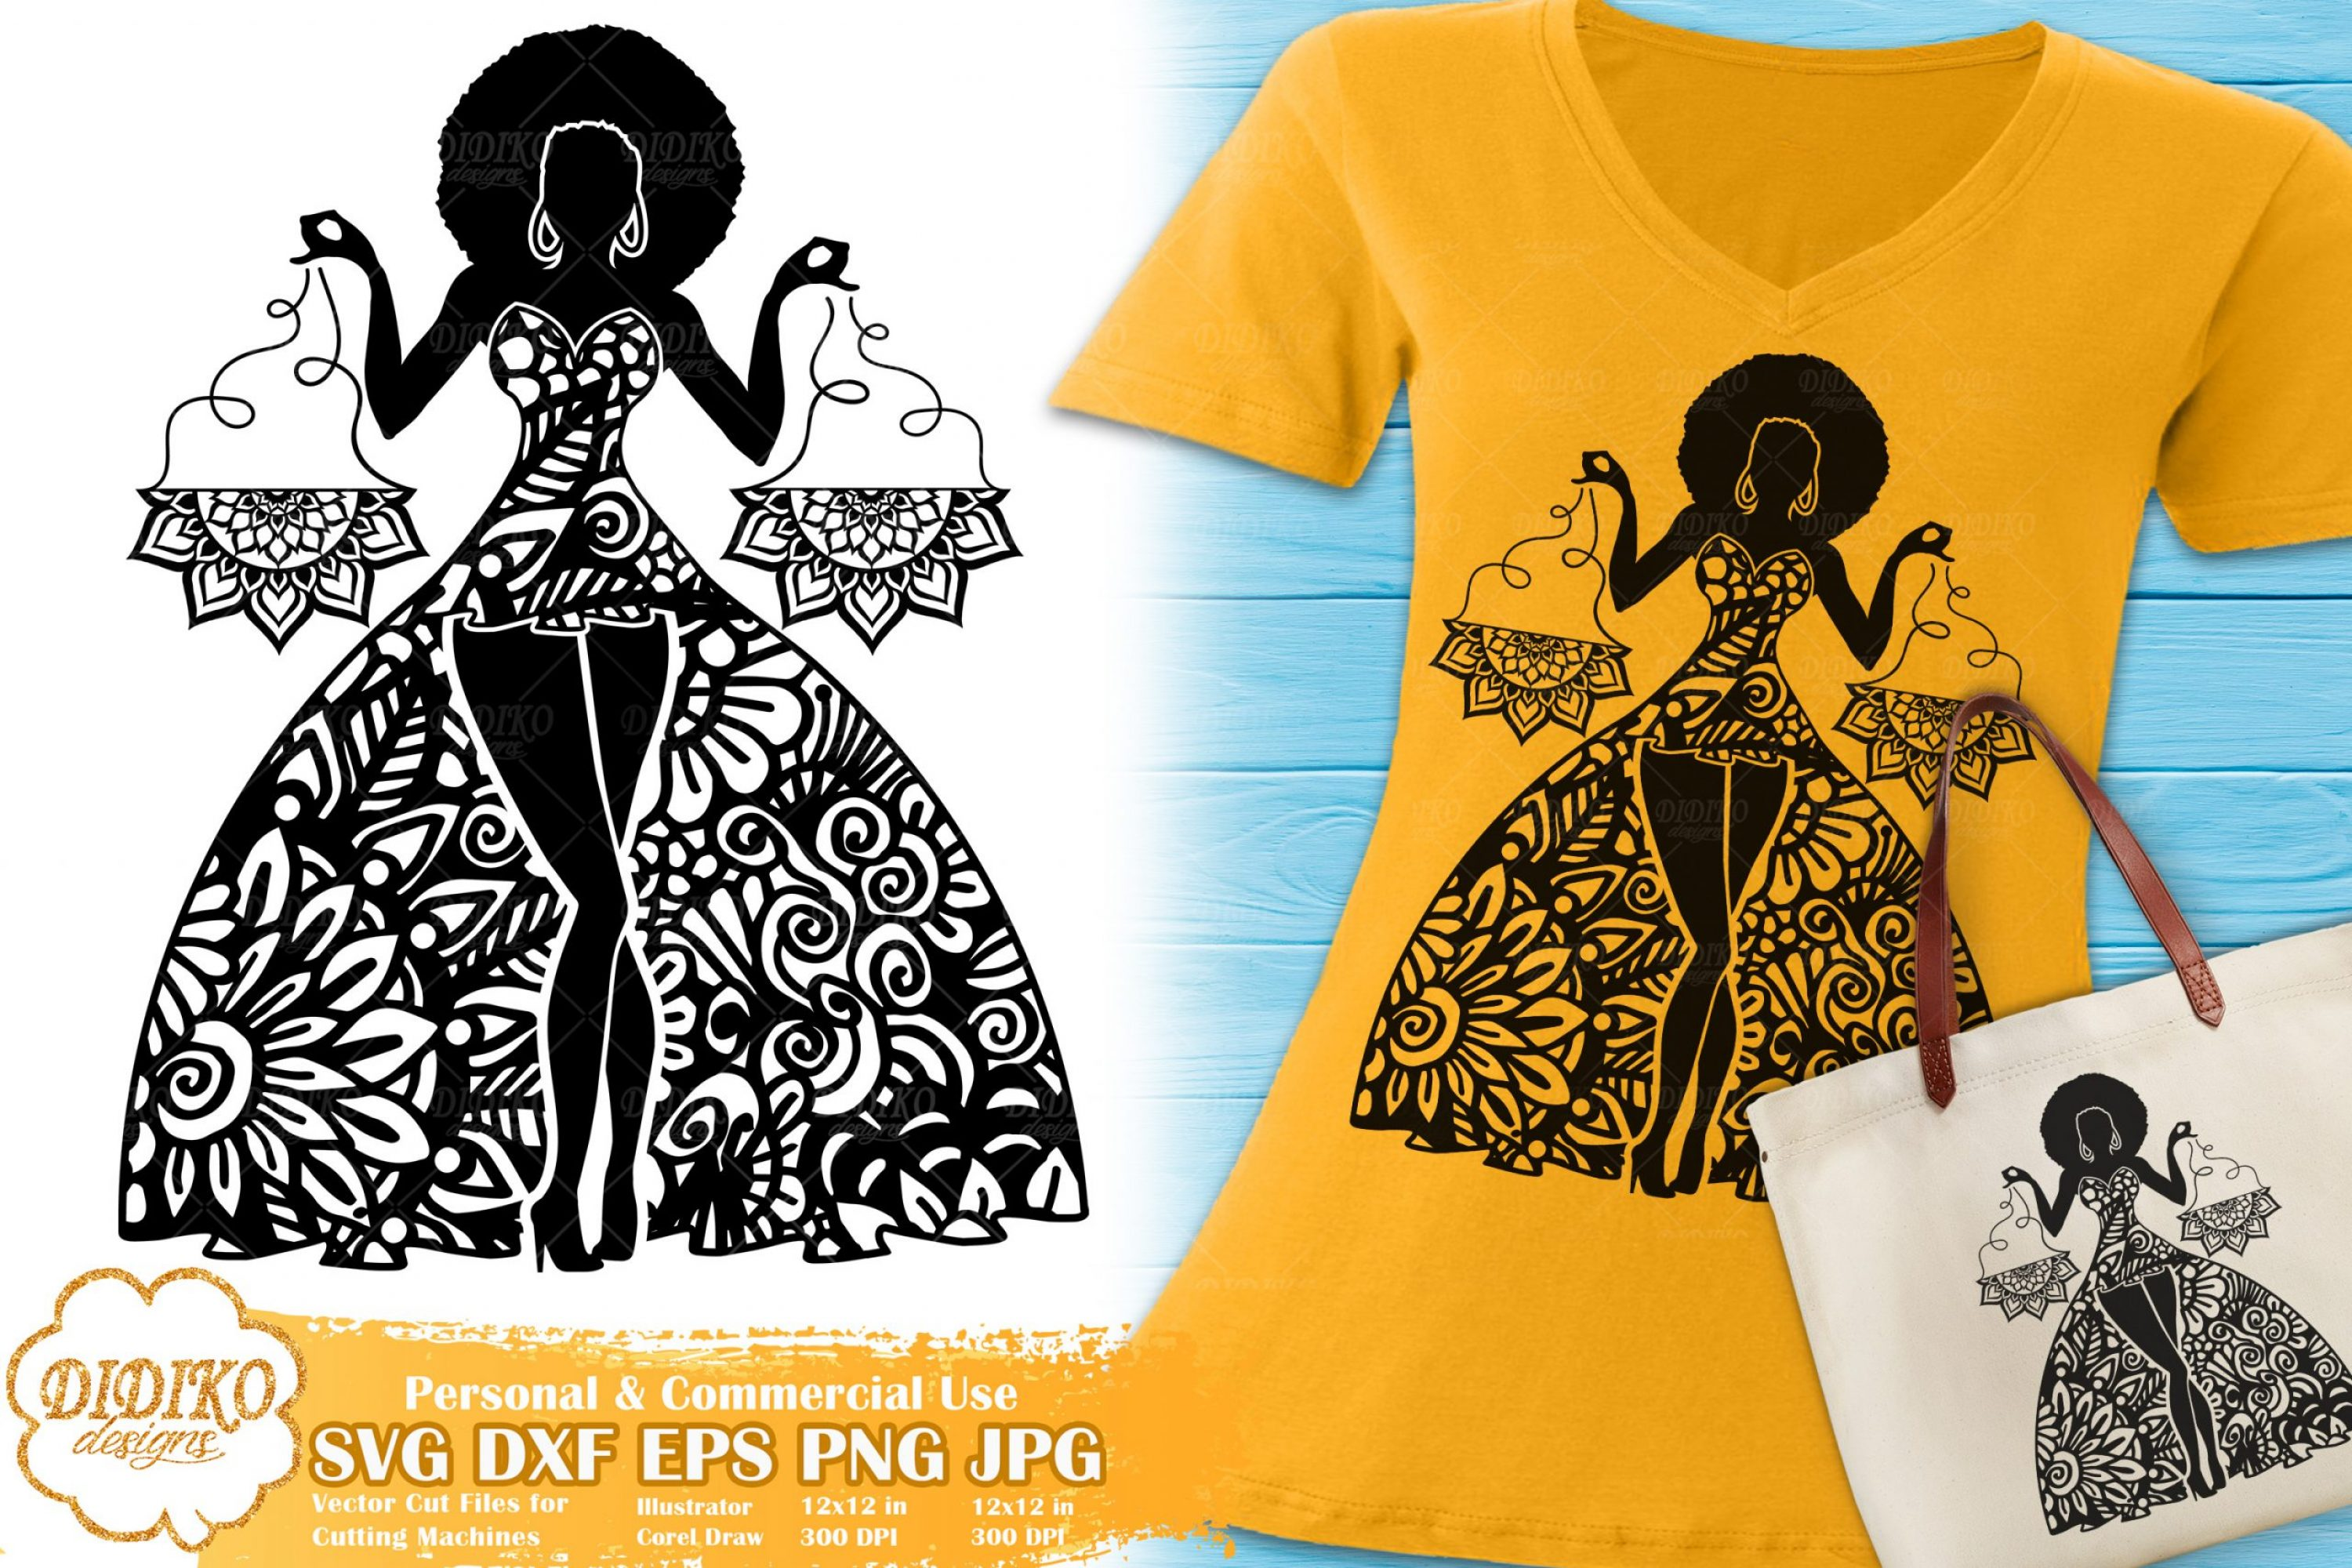 Libra SVG | Black Woman SVG | Zentangle Cricut File